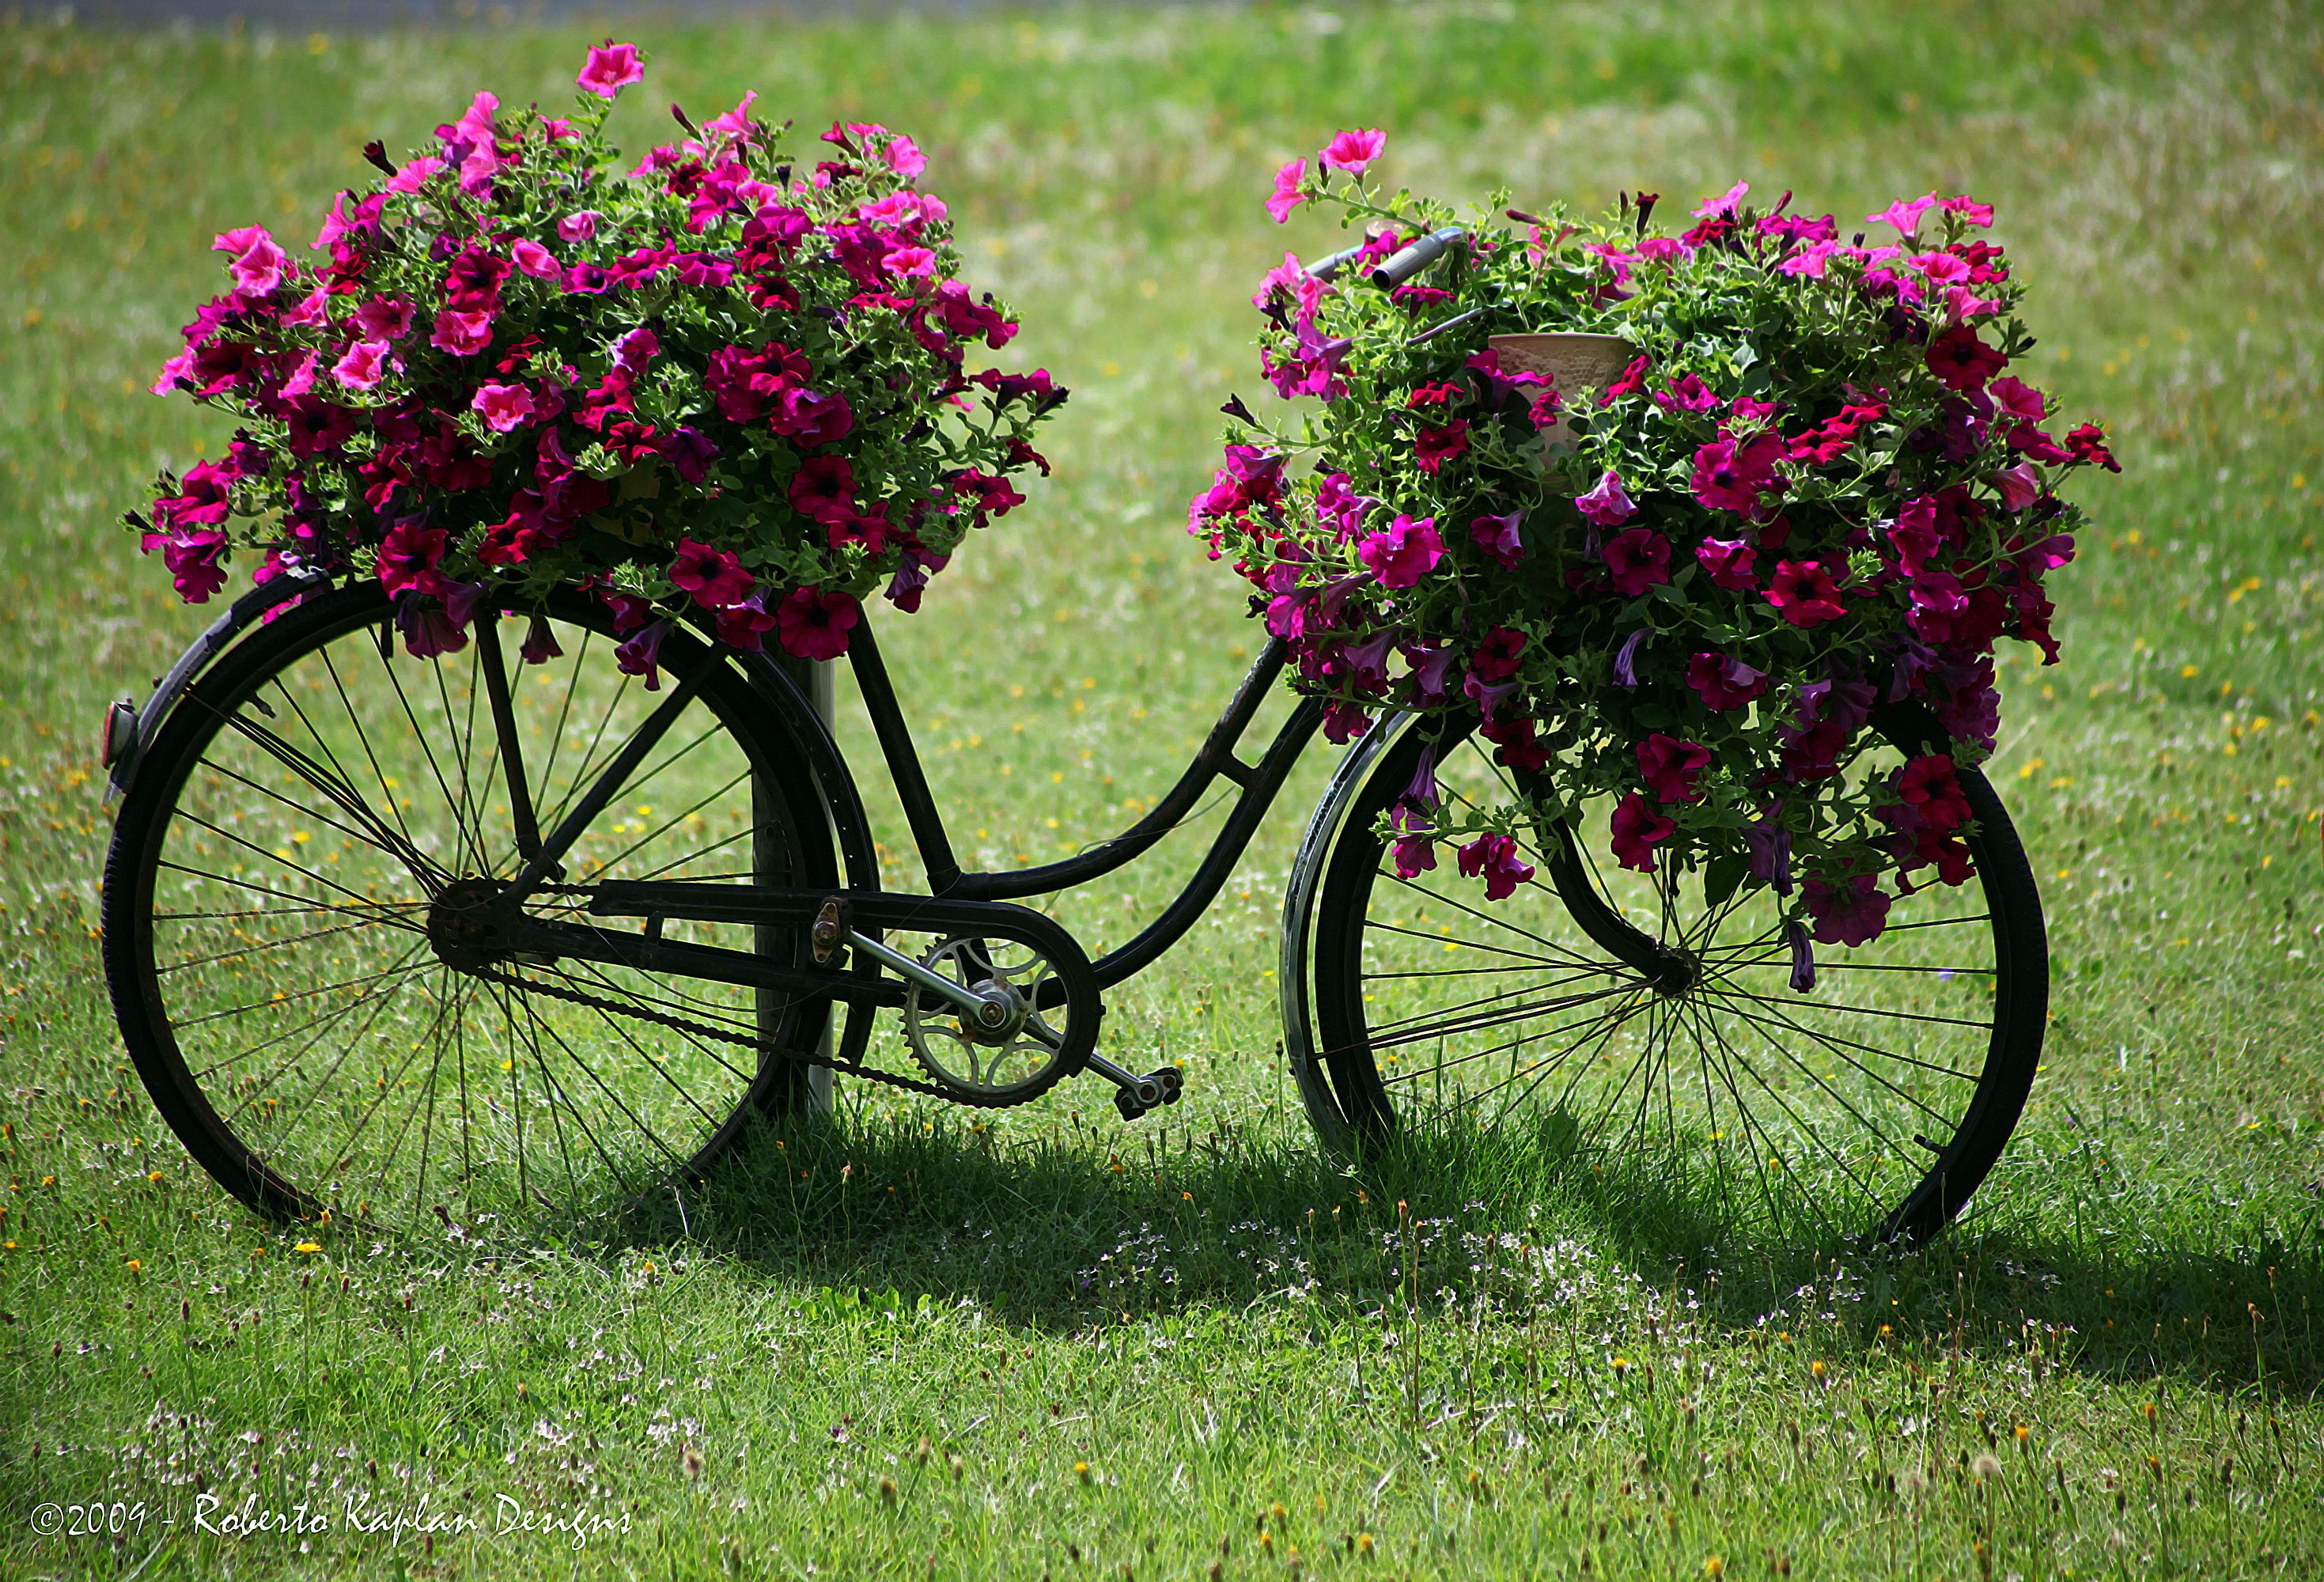 Garden decor bicycle   Where else but Austria Better watch my bicycle  Bikes